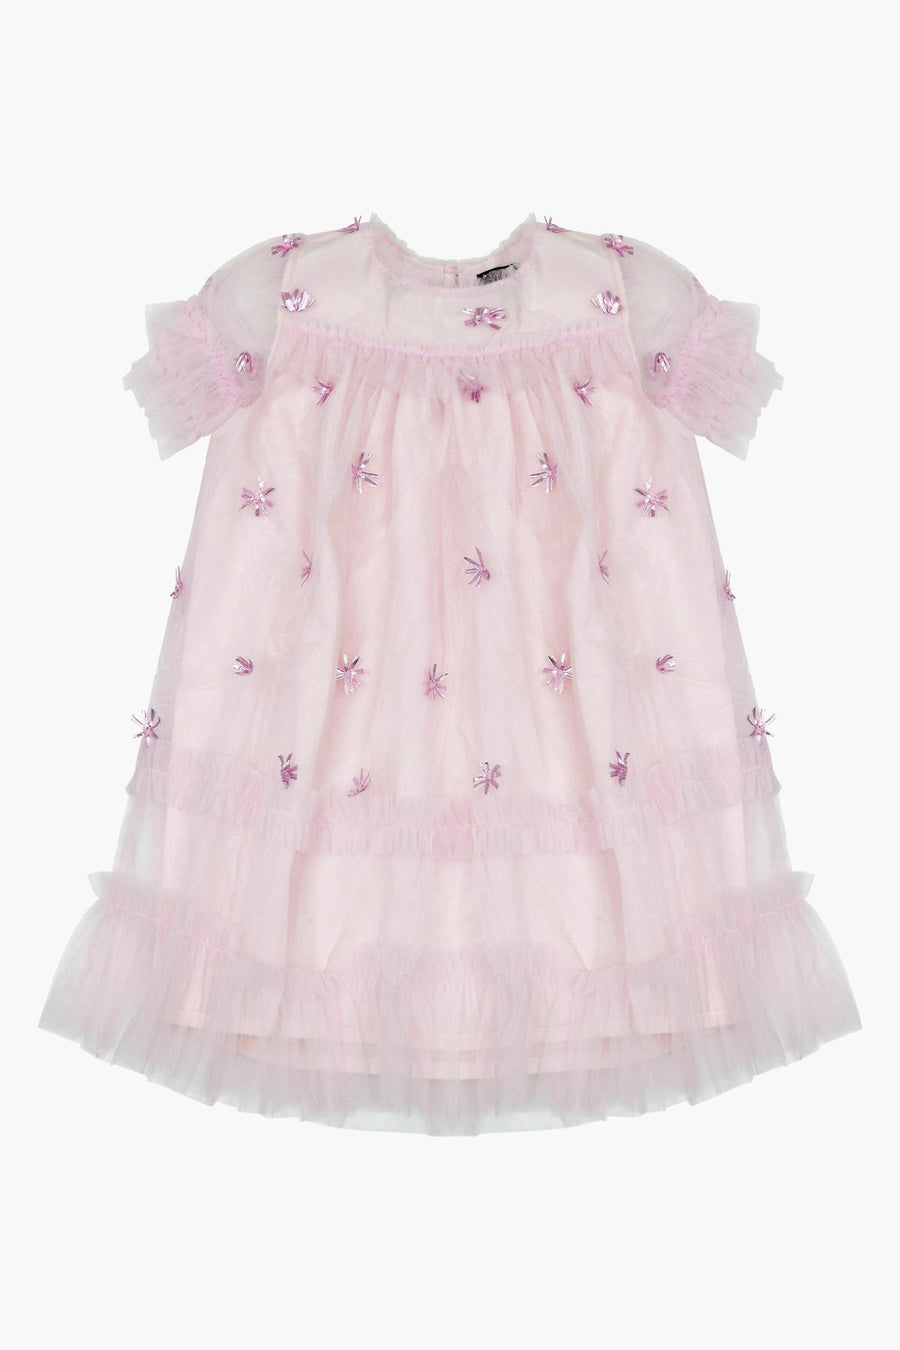 Velveteen Laylani Girls Dress - Pretty In Pink